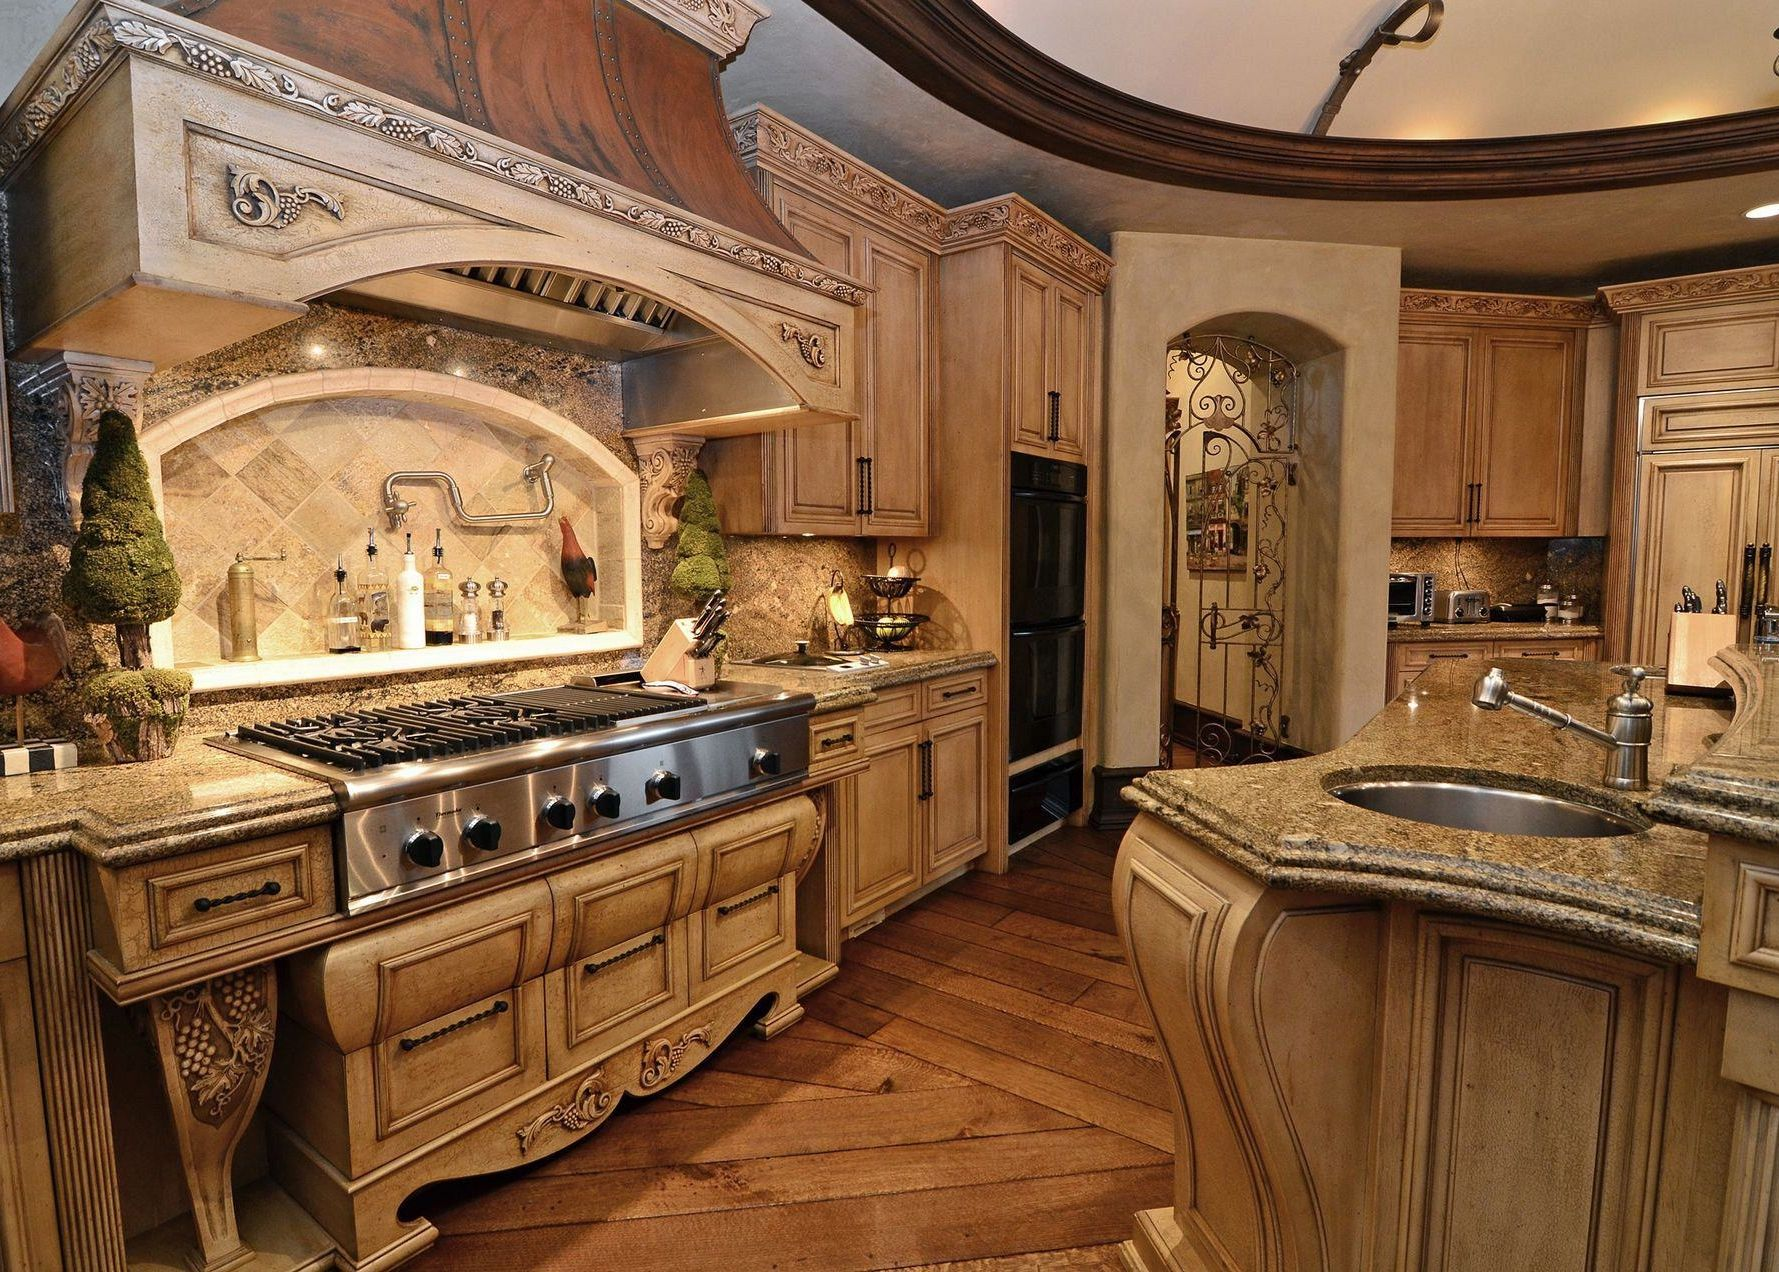 Old World Kitchens Interior And Exterior Design Ideas Kitchens Pinteres